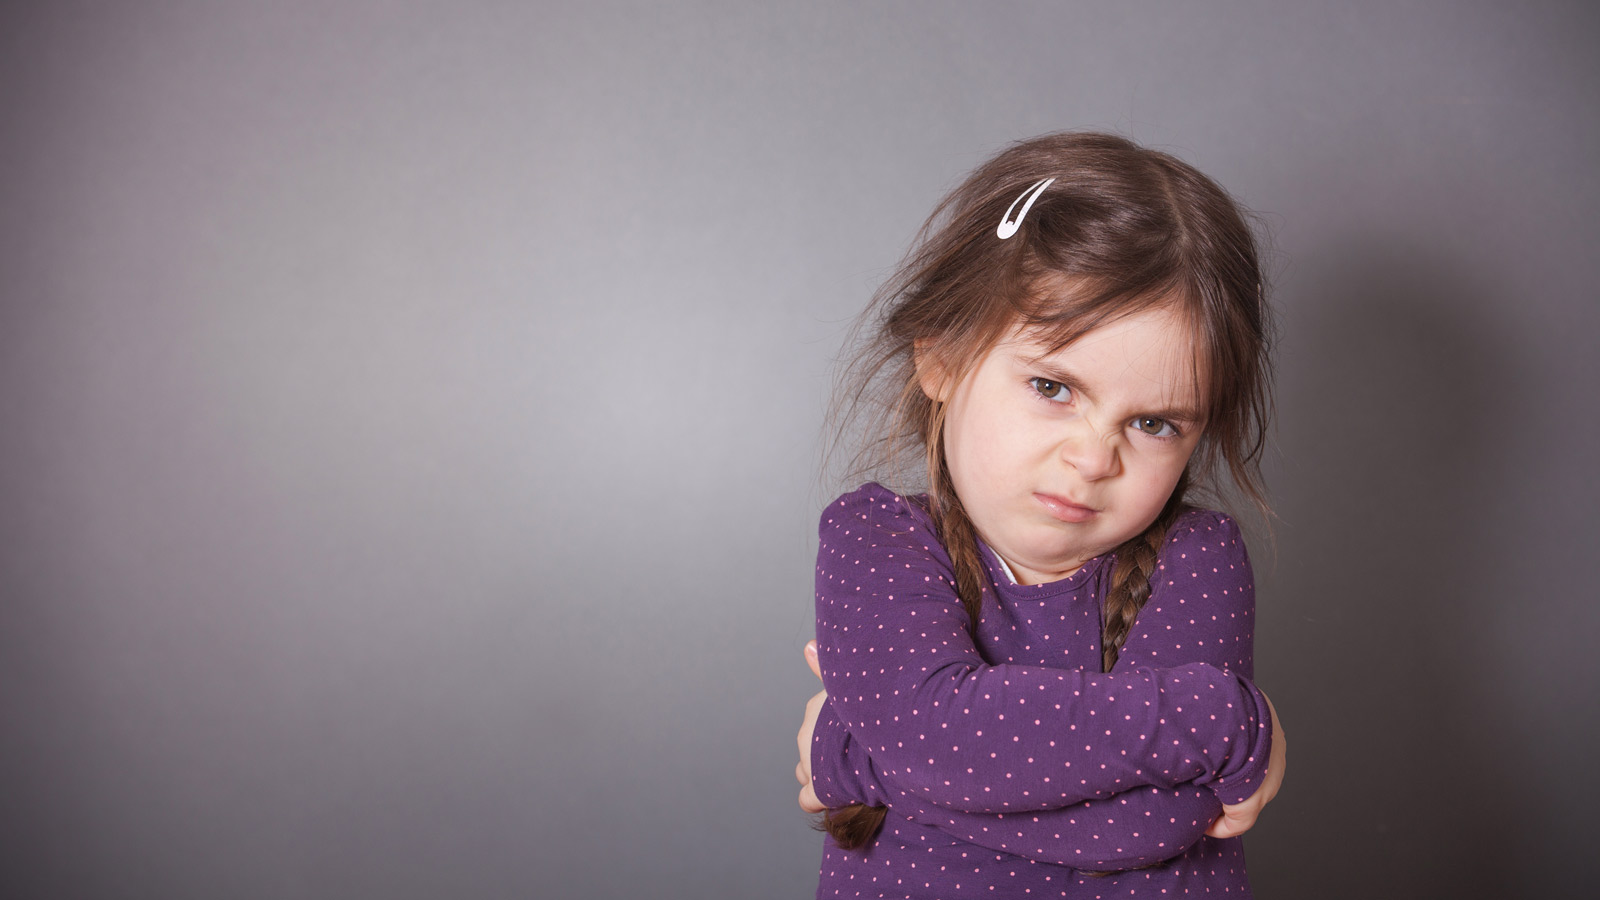 mad toddler girl in a purple shirt